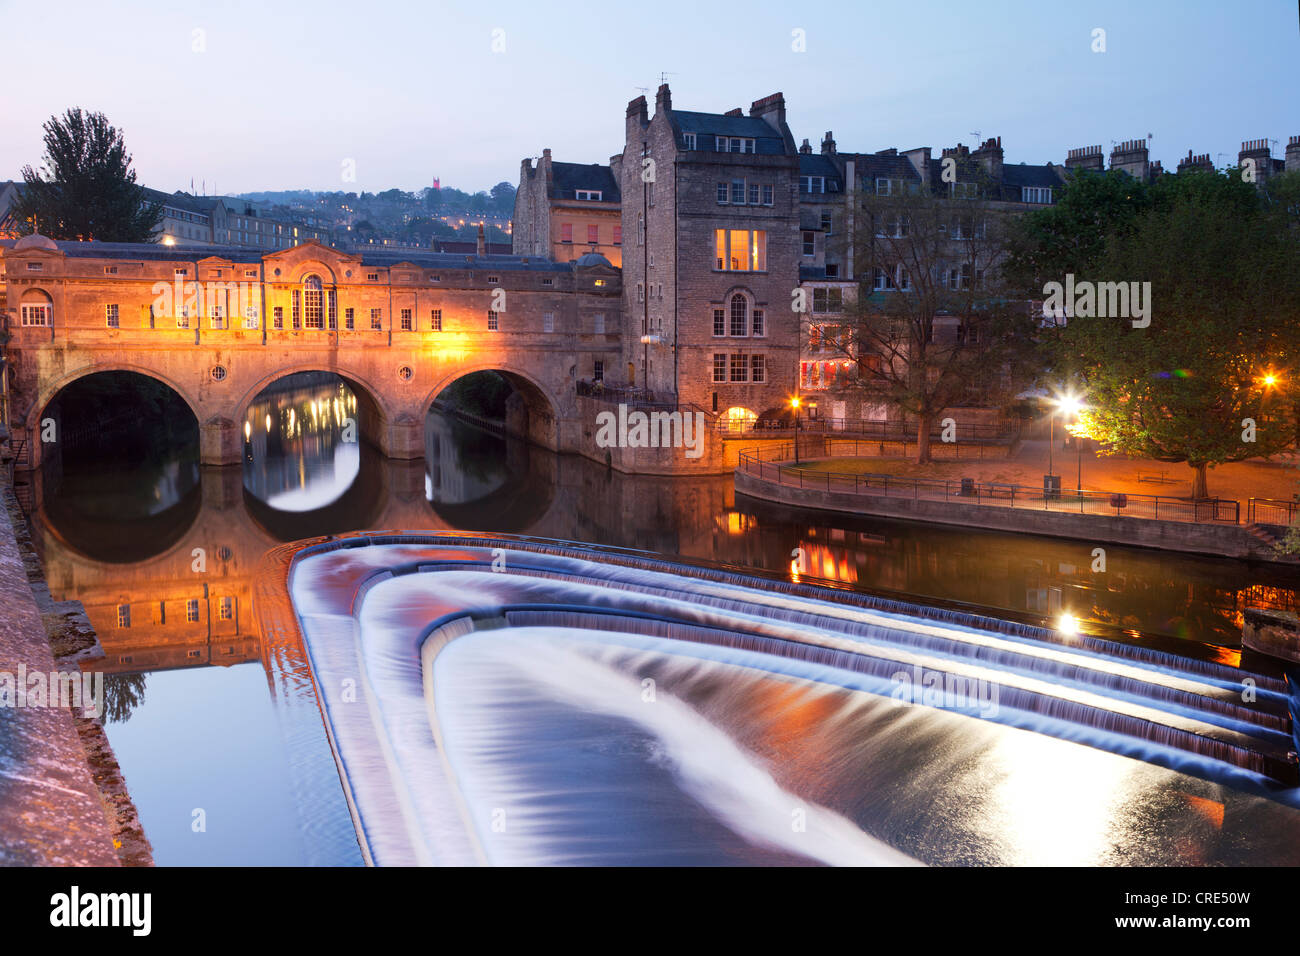 Pulteney Bridge et Weir, Bath, Angleterre, au crépuscule. Photo Stock